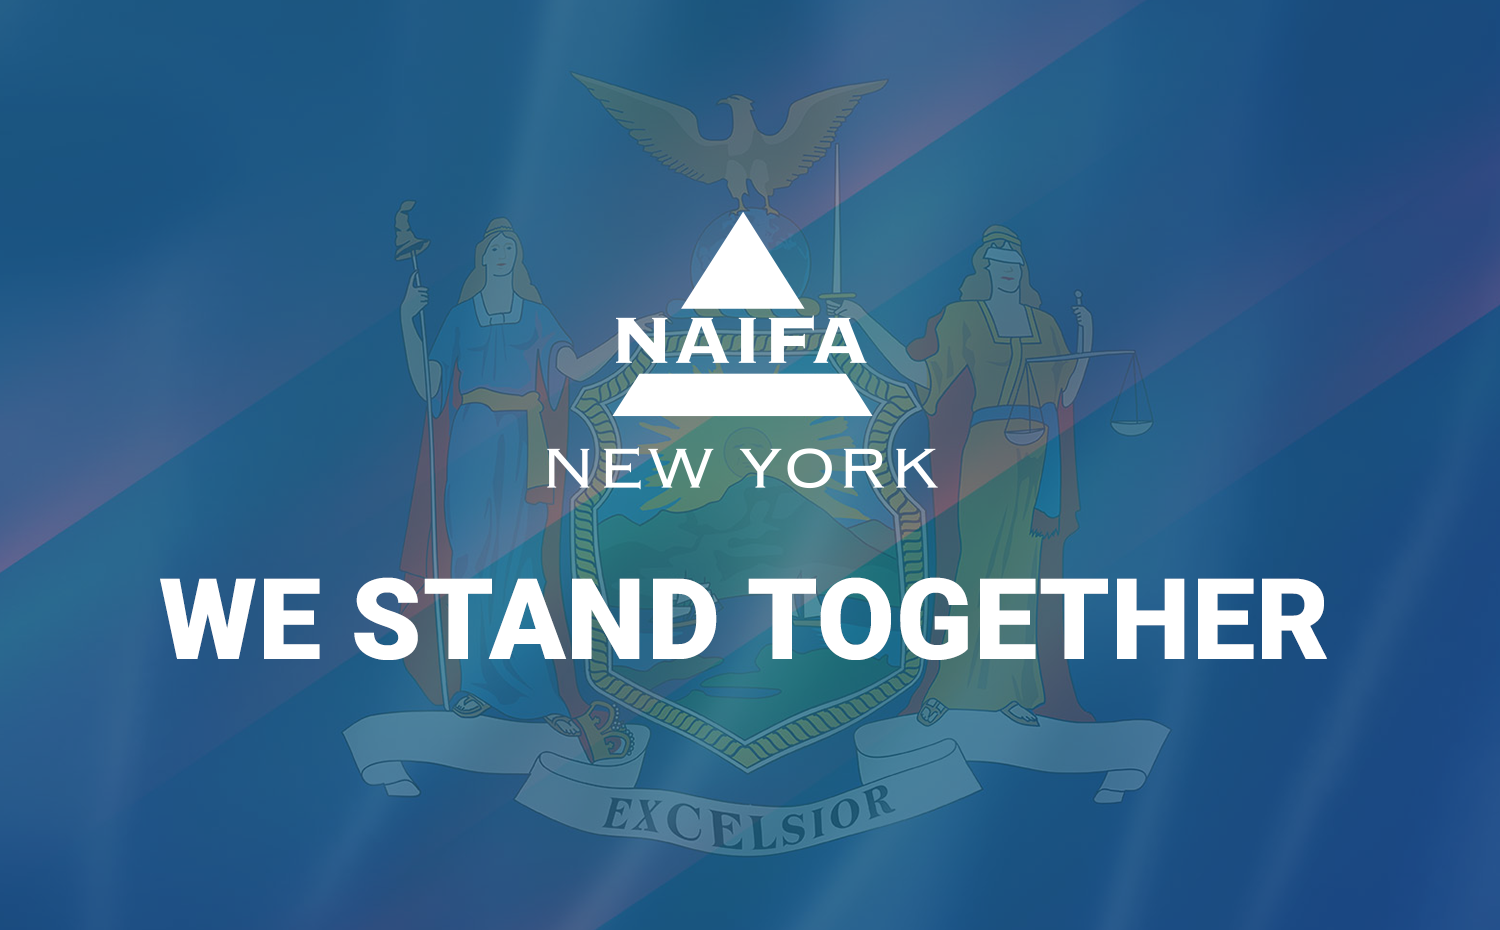 NAIFA-Iowa supports NAIFA-NY